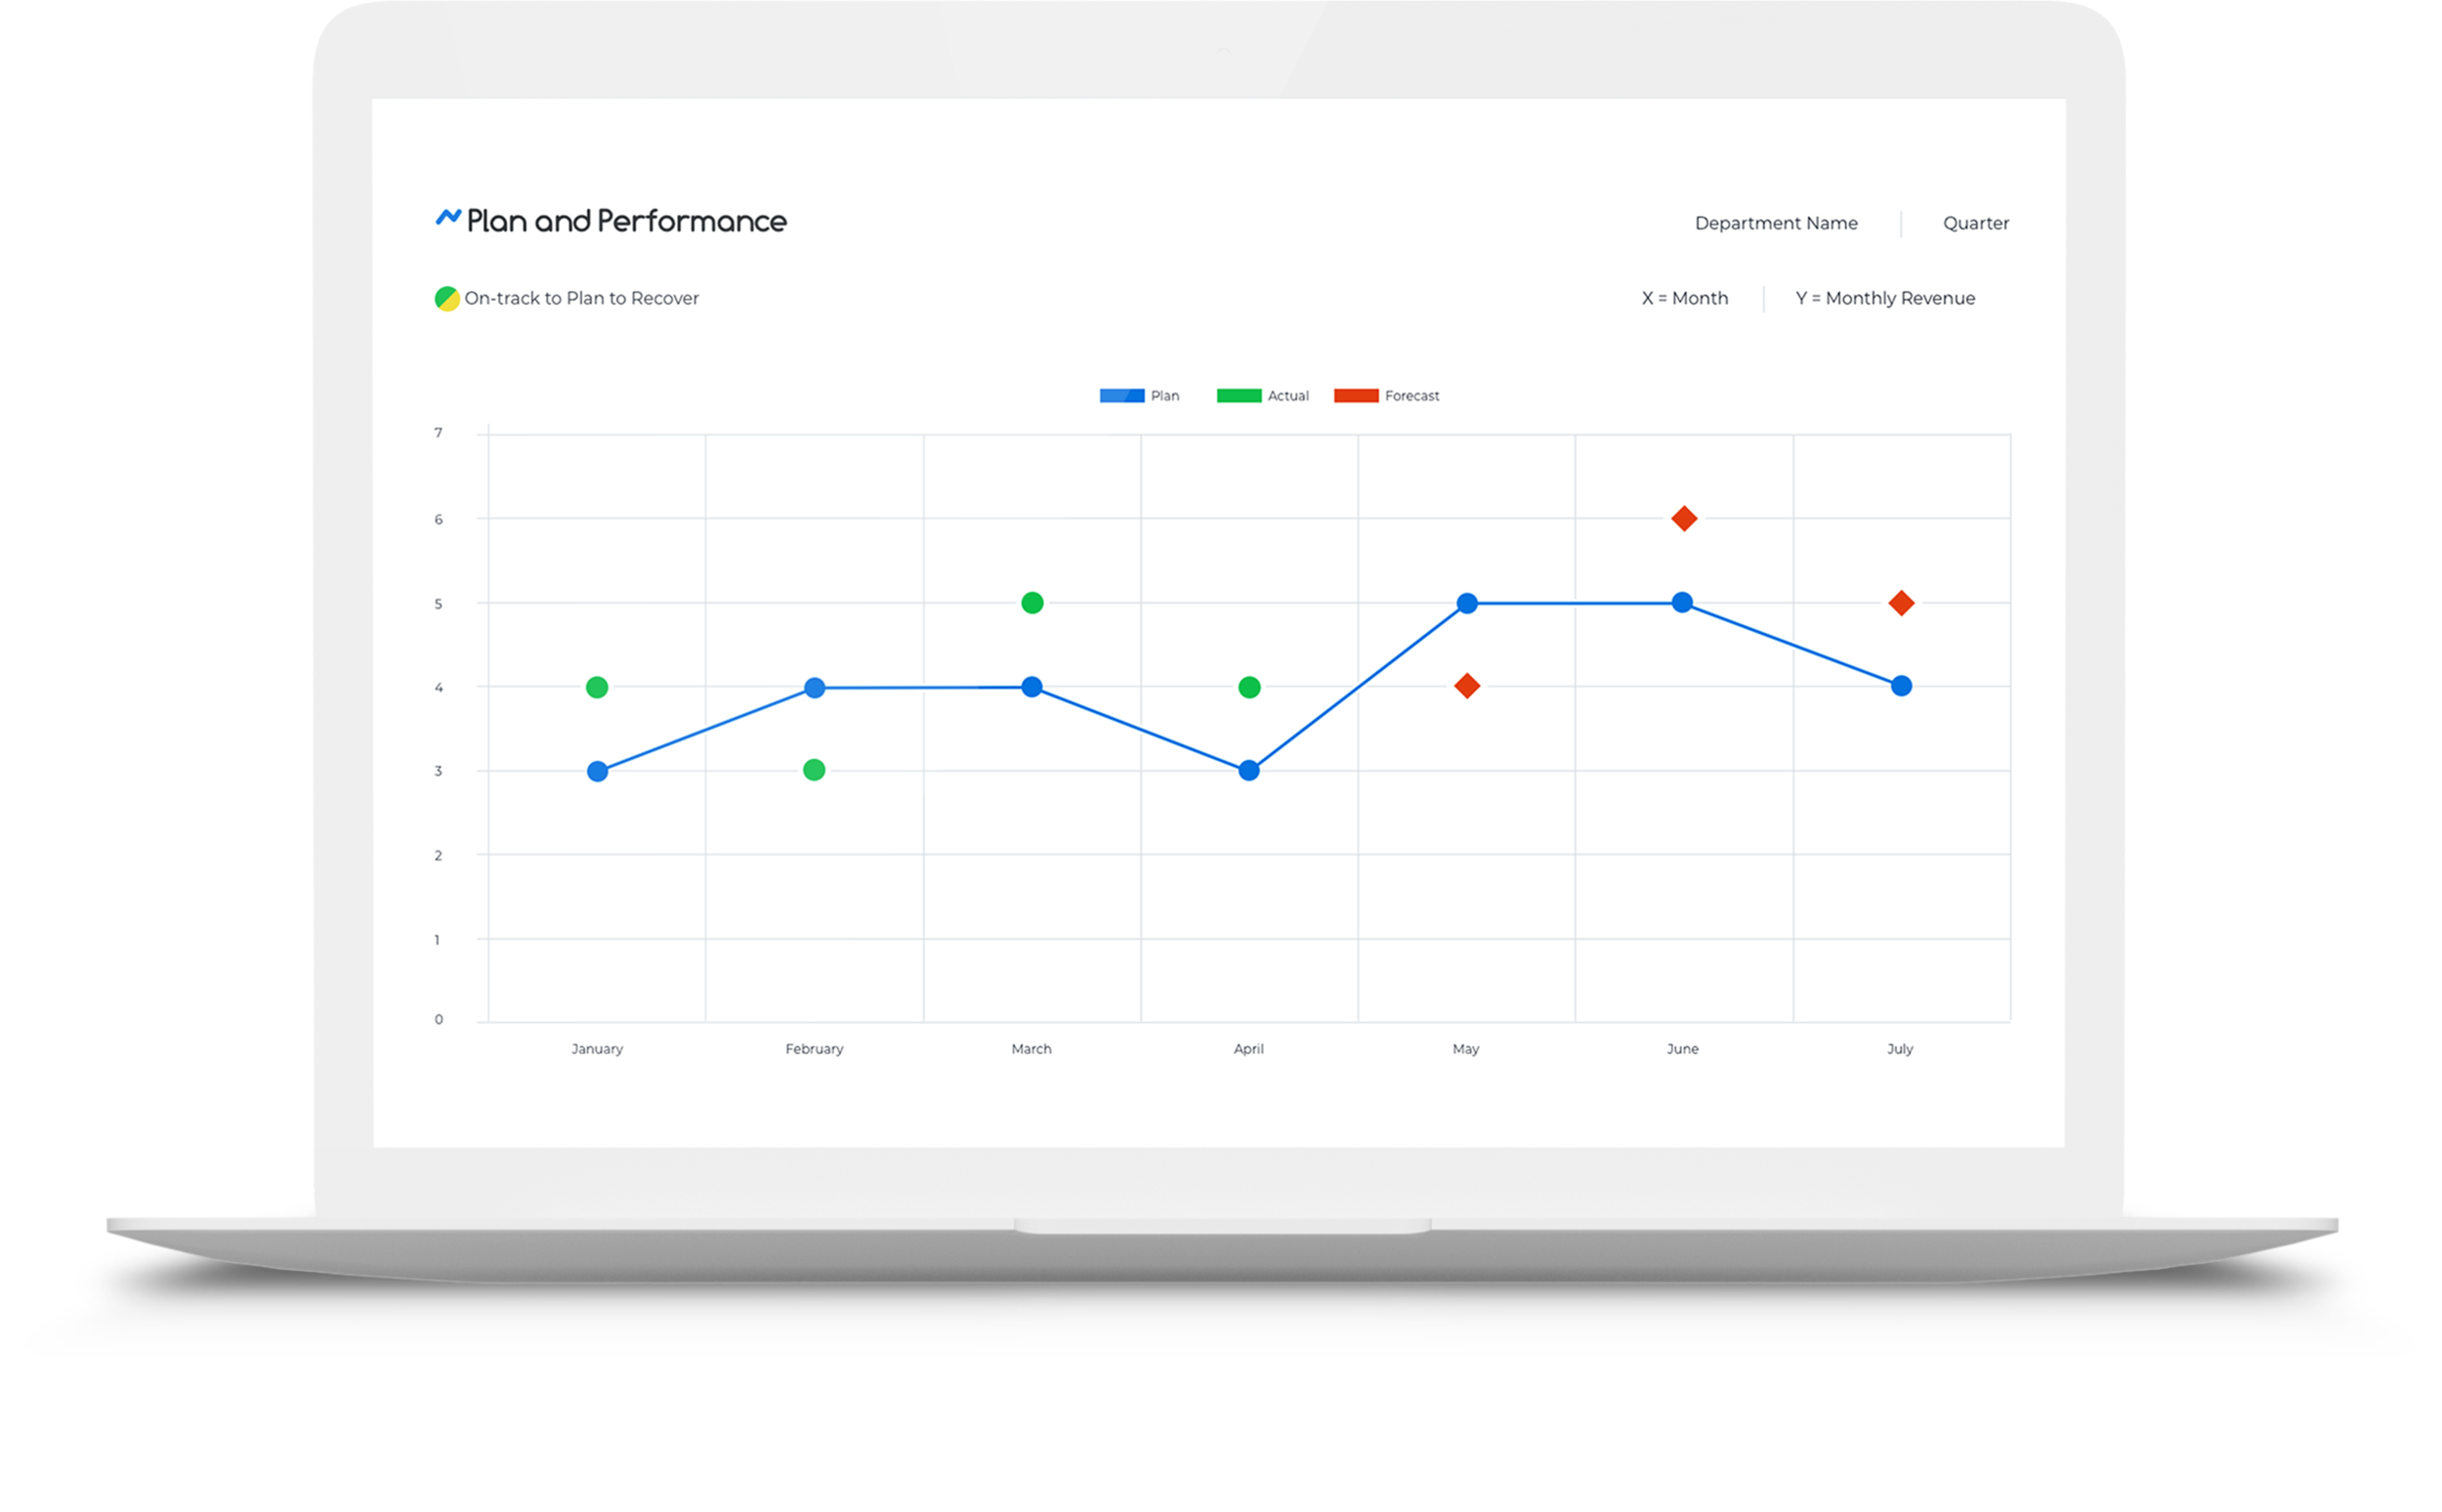 Instant Clarity and Alignment - Align your team to One Plan, visualize and automate your performance, and eliminate wasteful meetings.